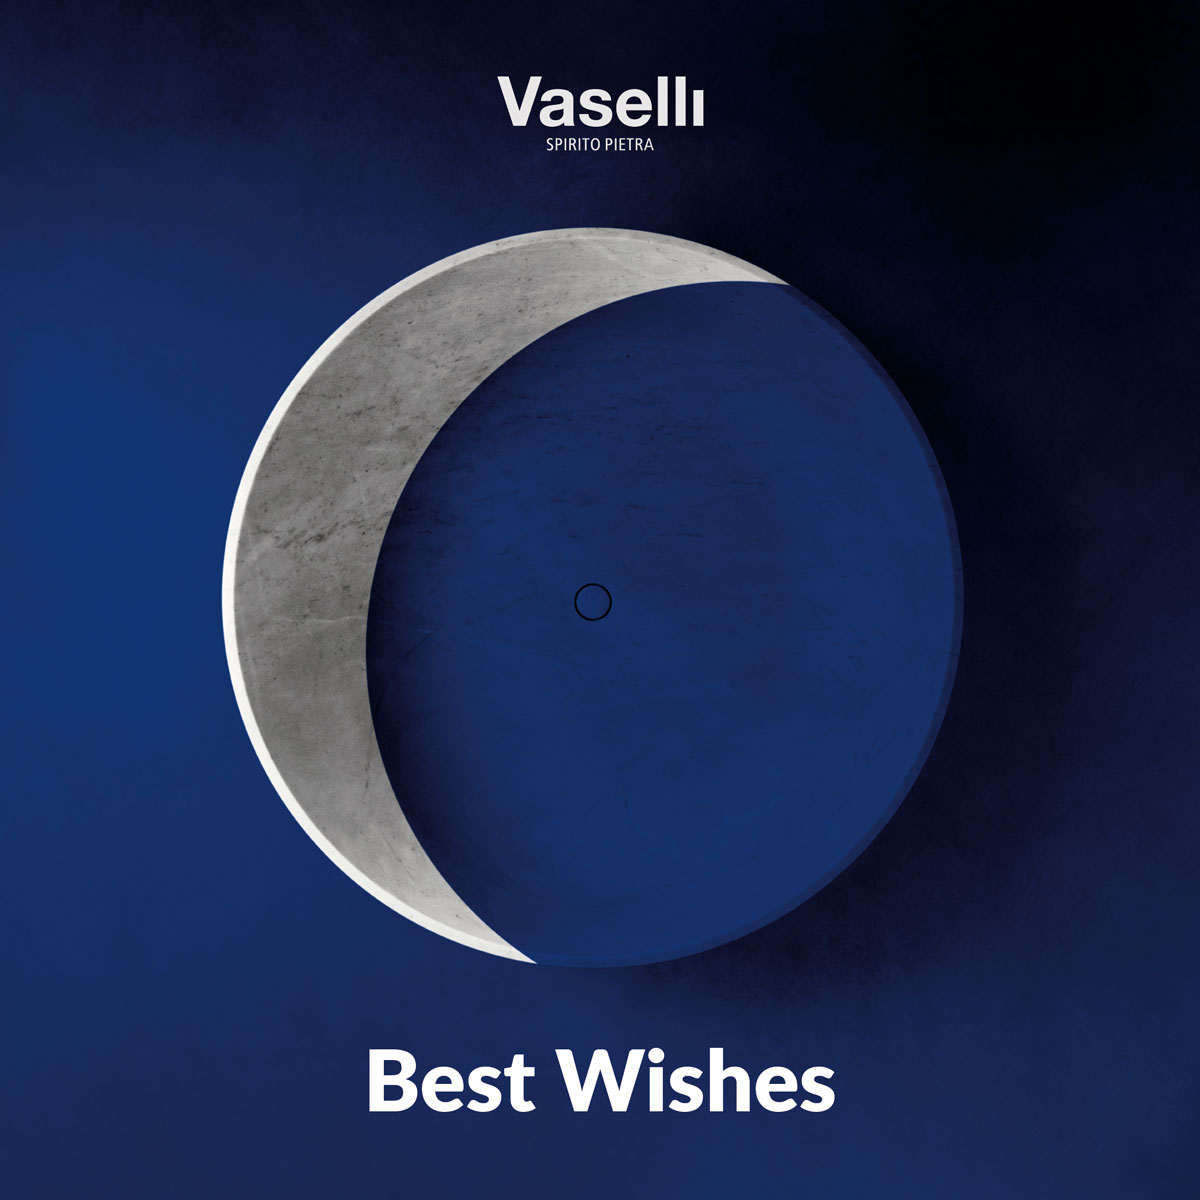 Winter break vaselli